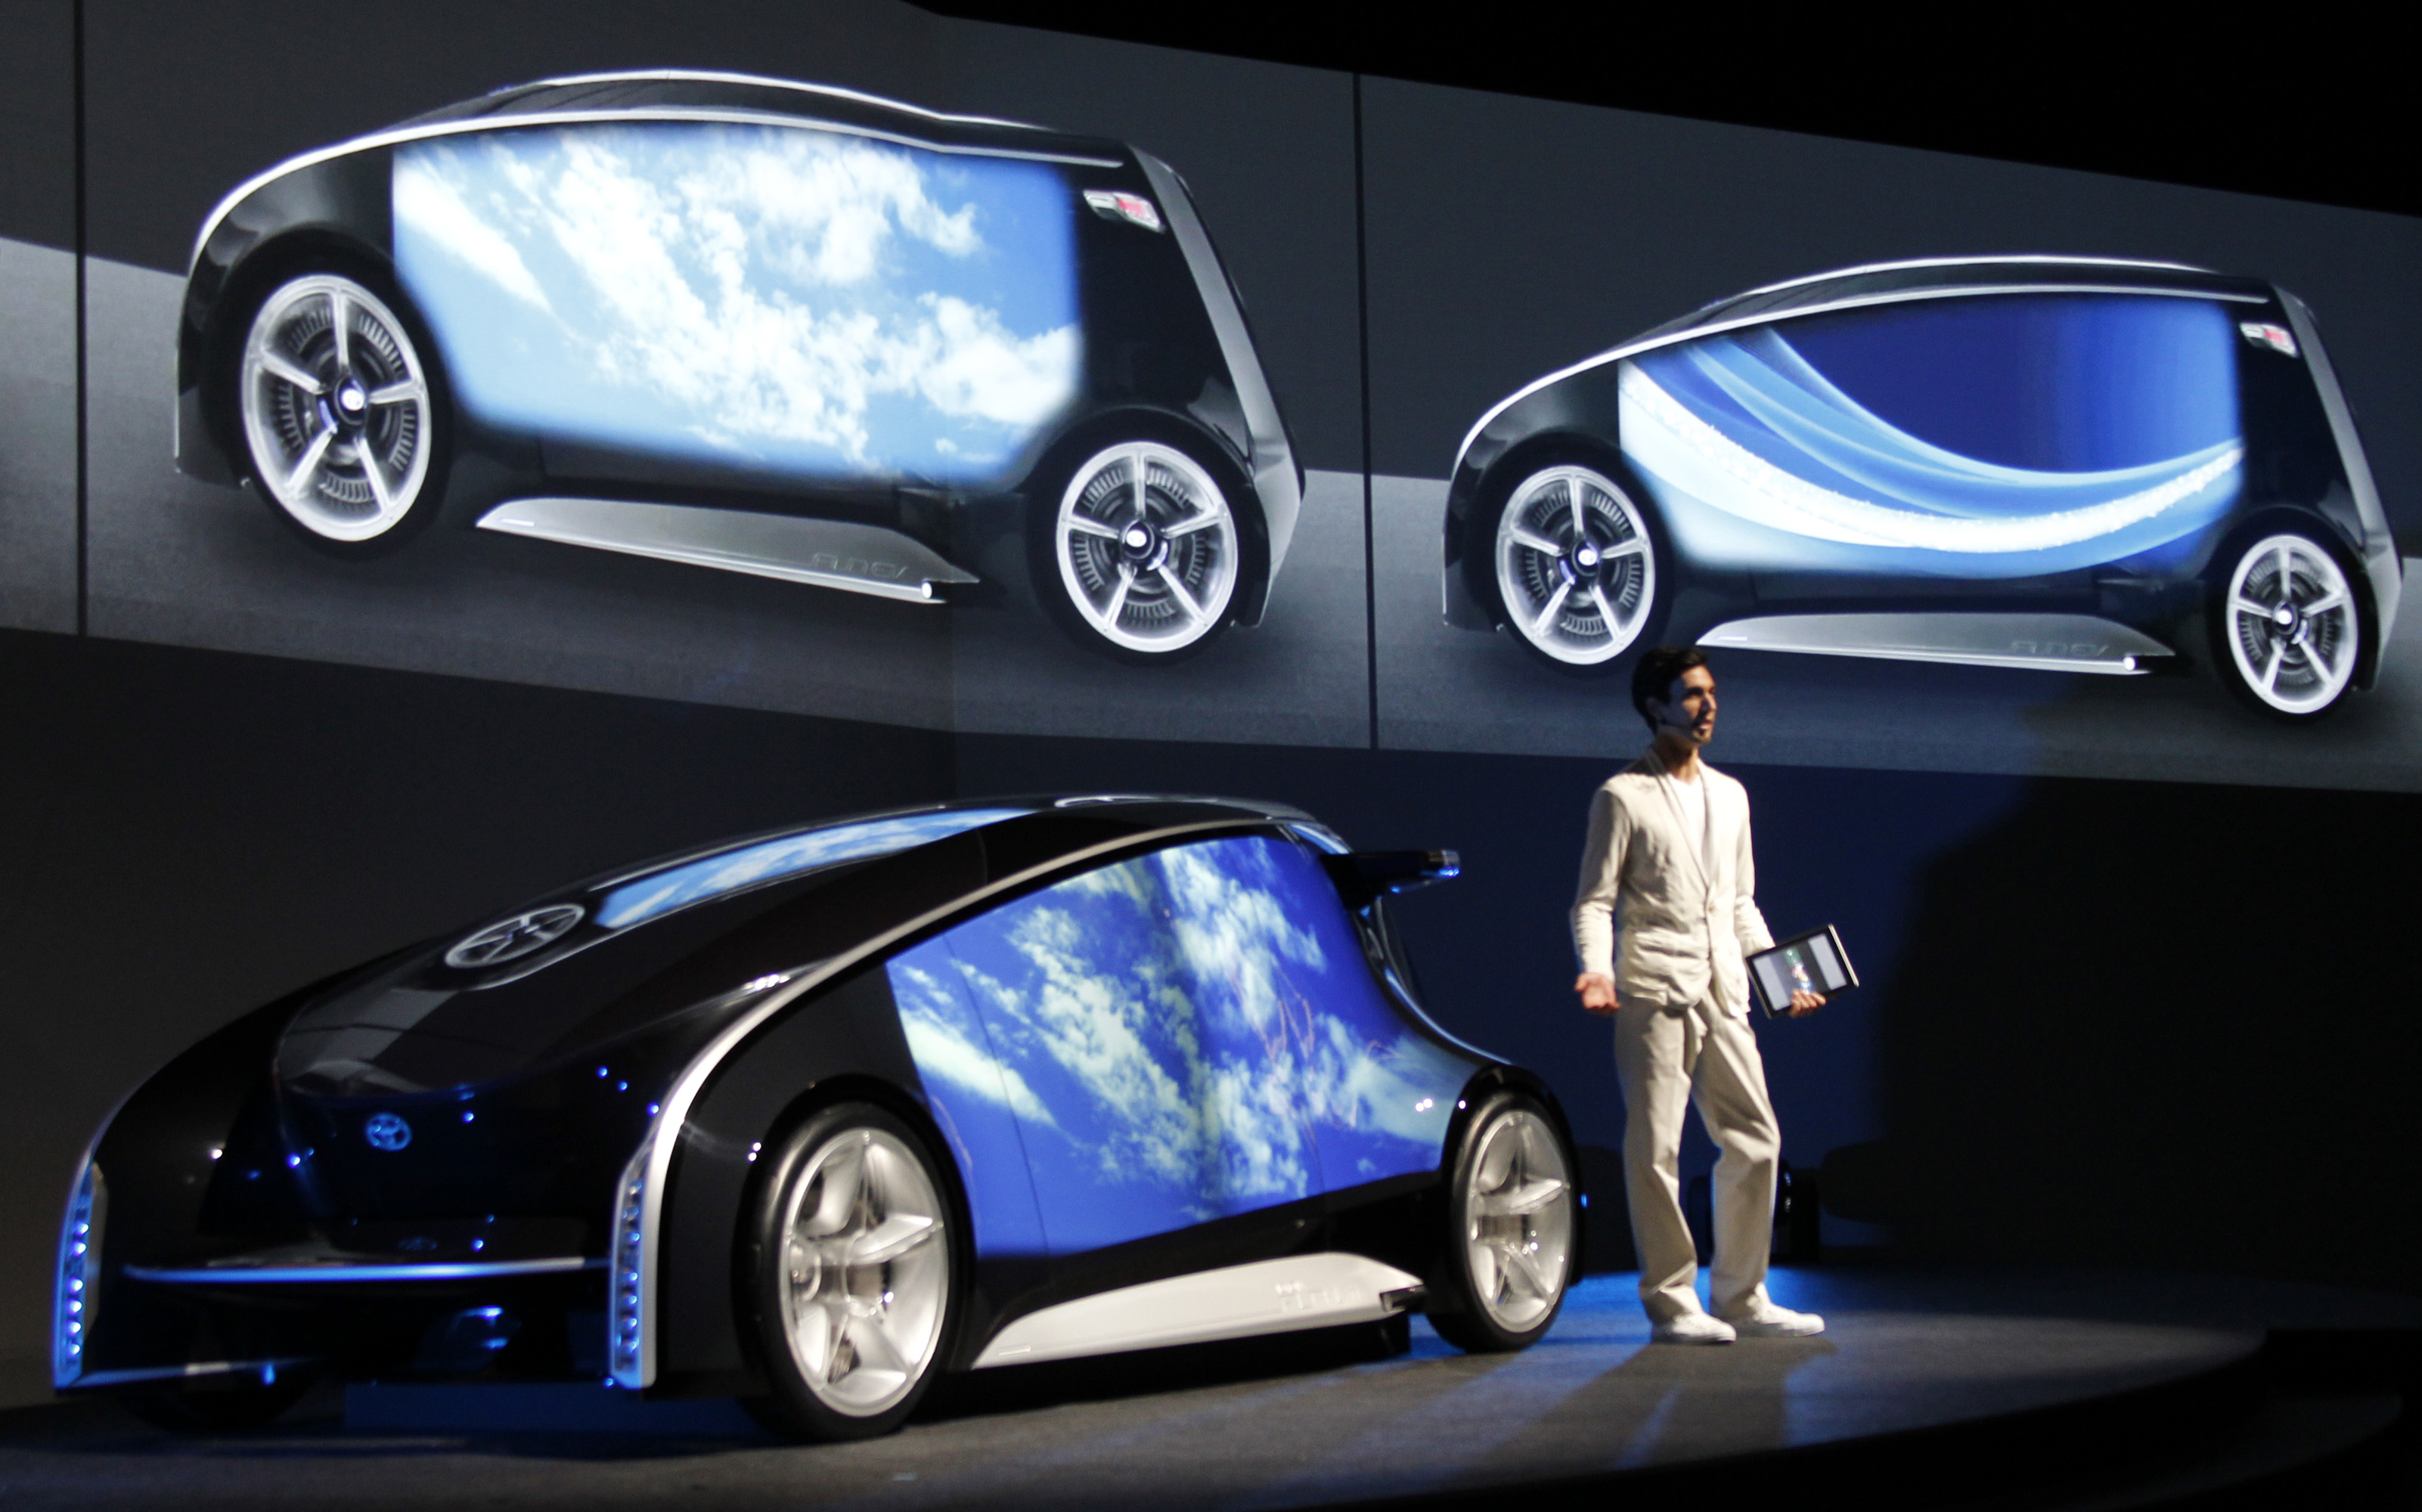 technology in automobile In just 127 years we developed technology that replaced horse powered carriages with electric cars driven by voice commands 127 years of modern automobile evolution.